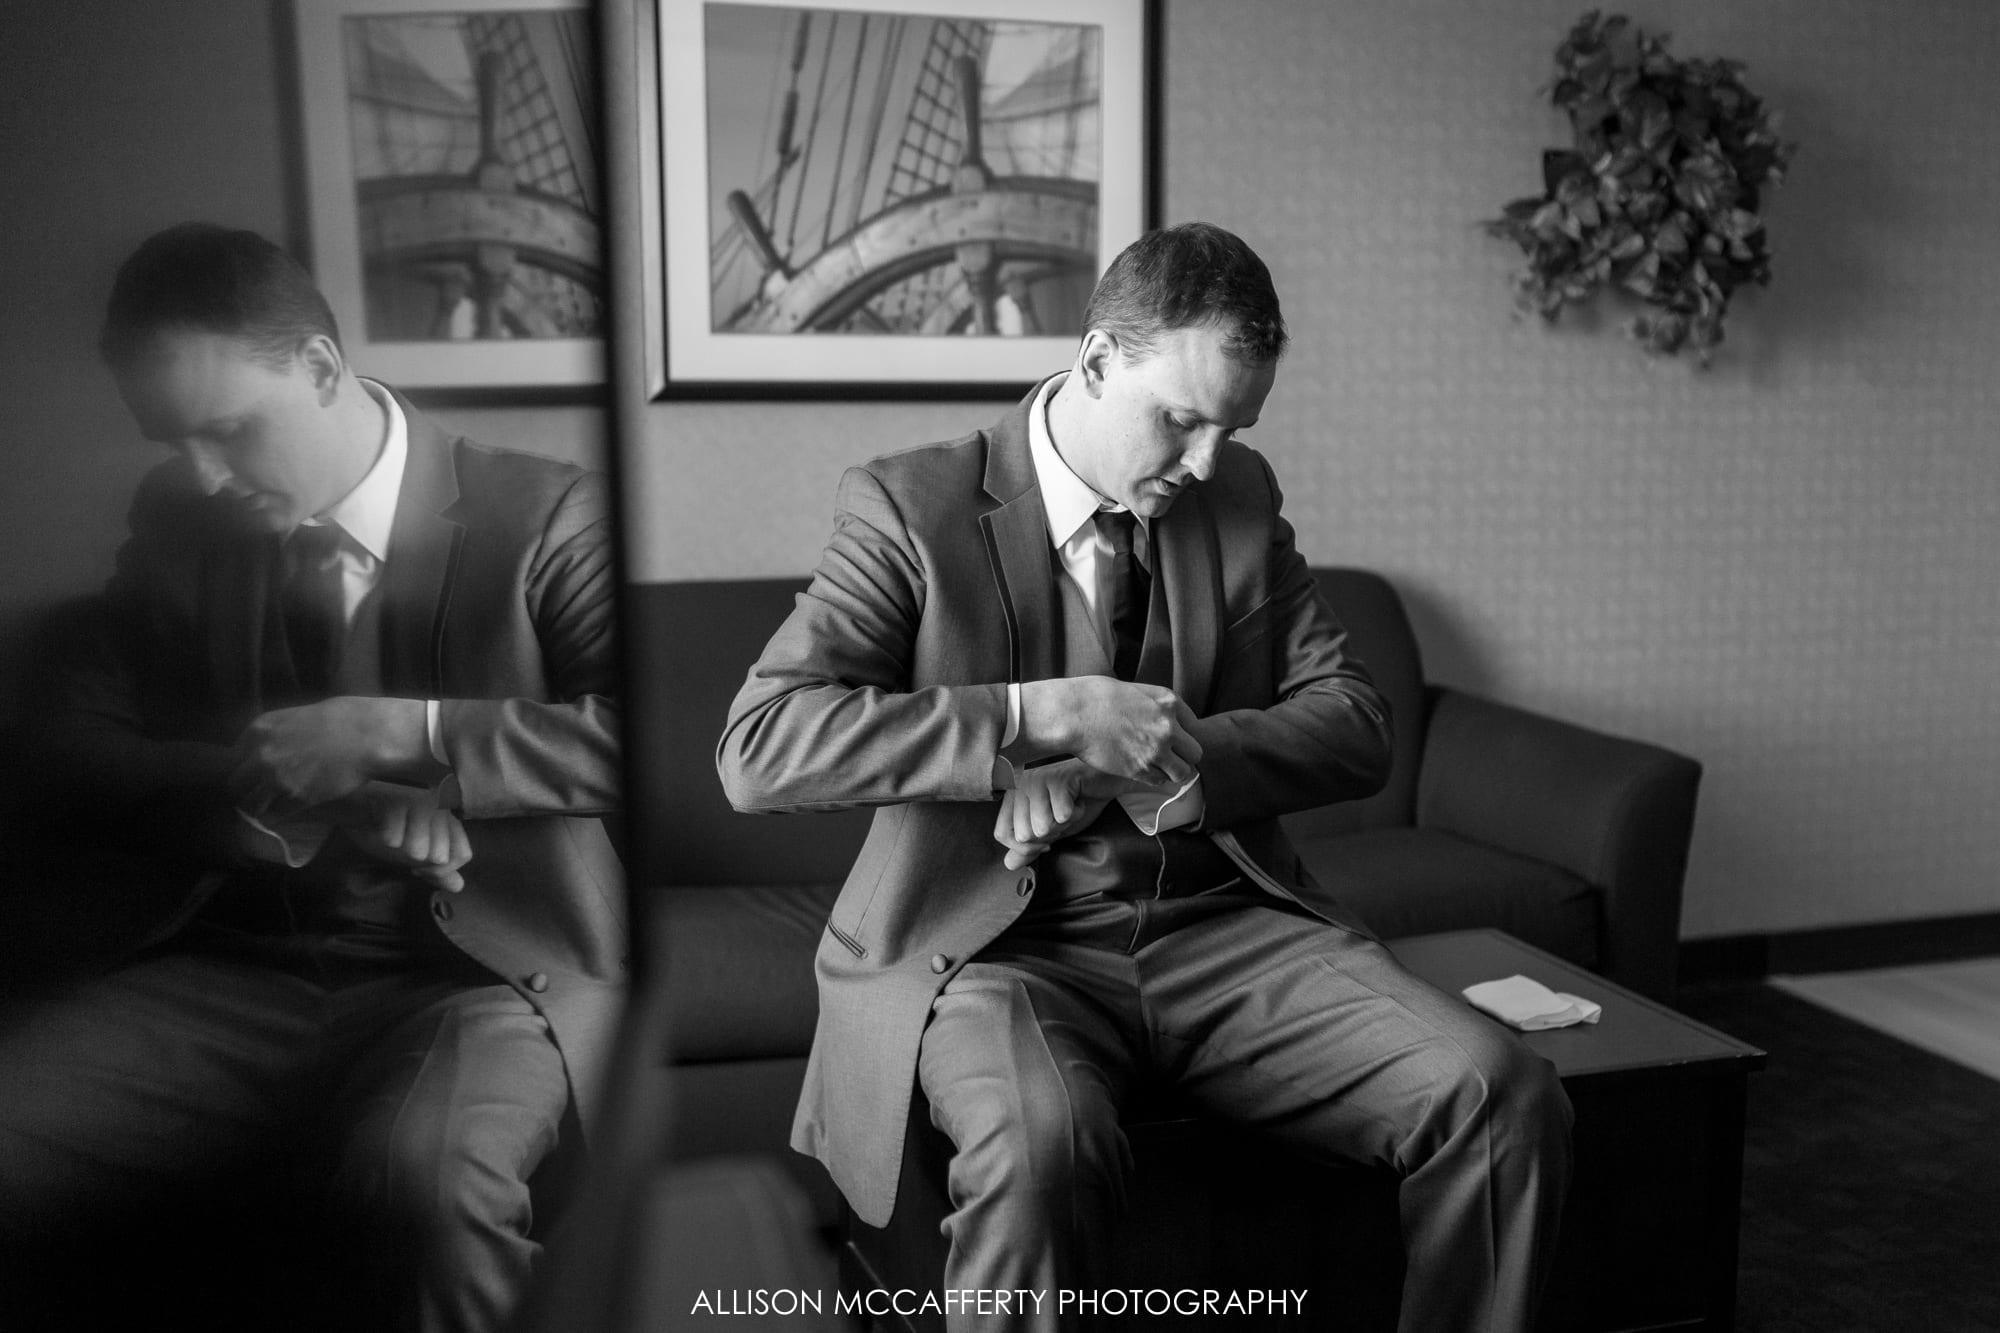 Groom getting ready in hotel room with a reflection